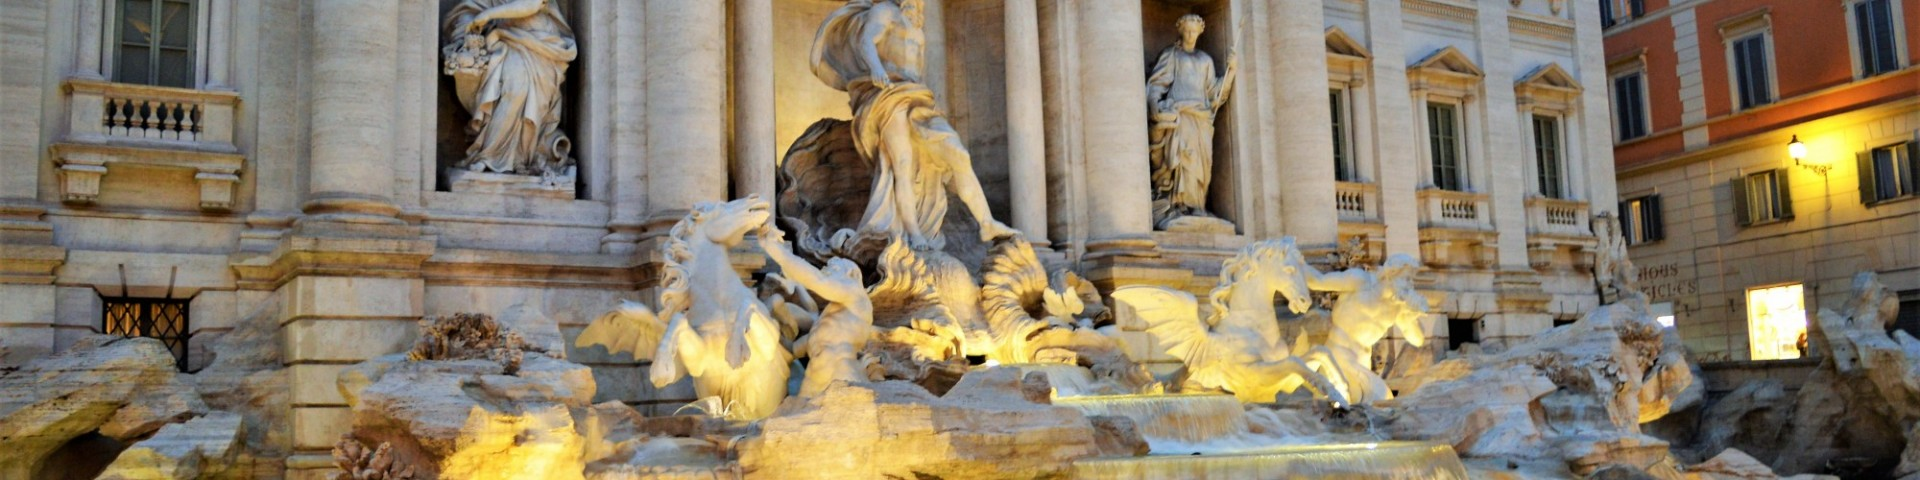 The Trevi Fountain, Rome